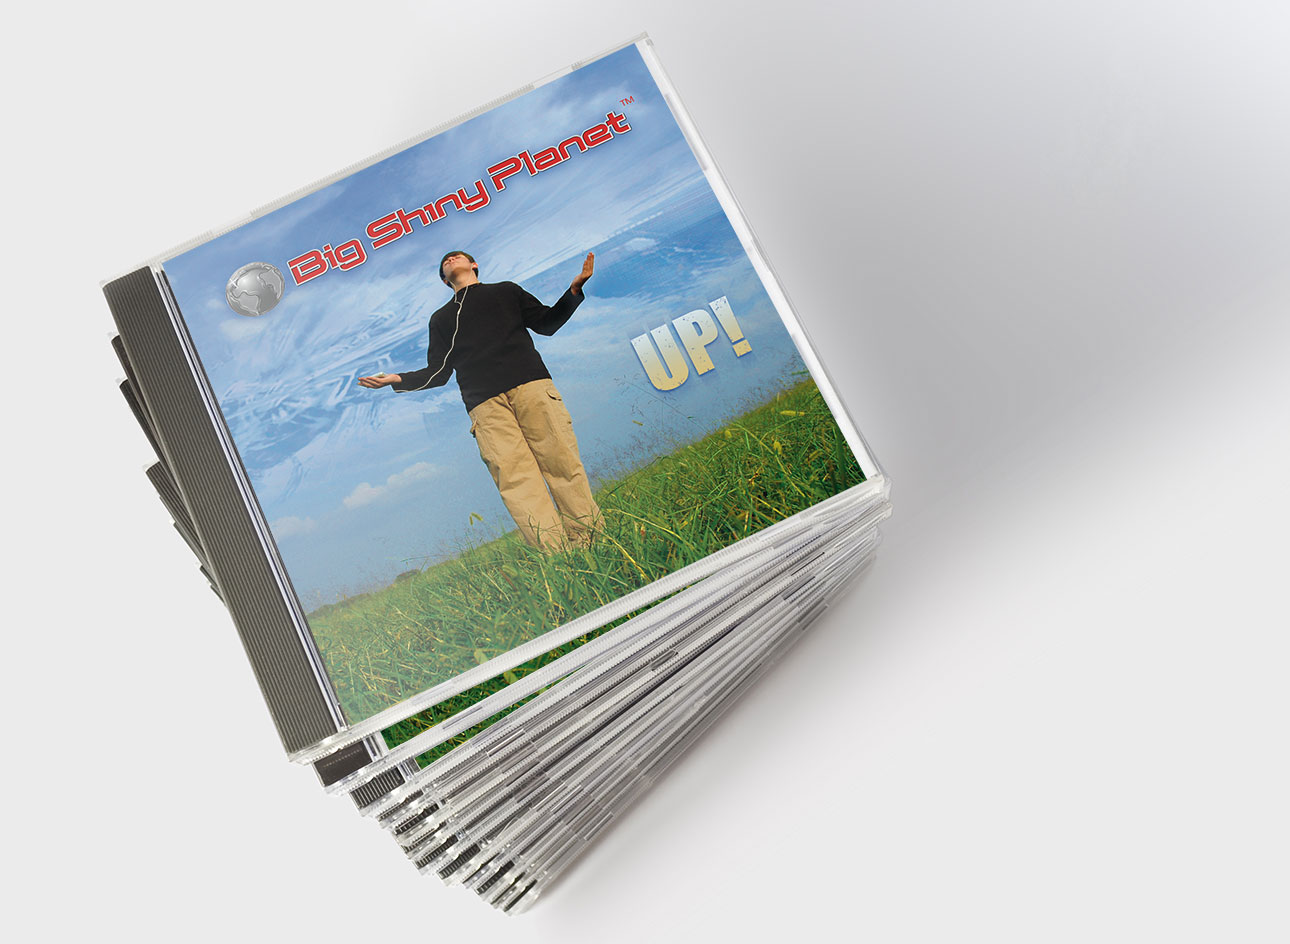 UP! CD Cover Design by Rimshot Creative